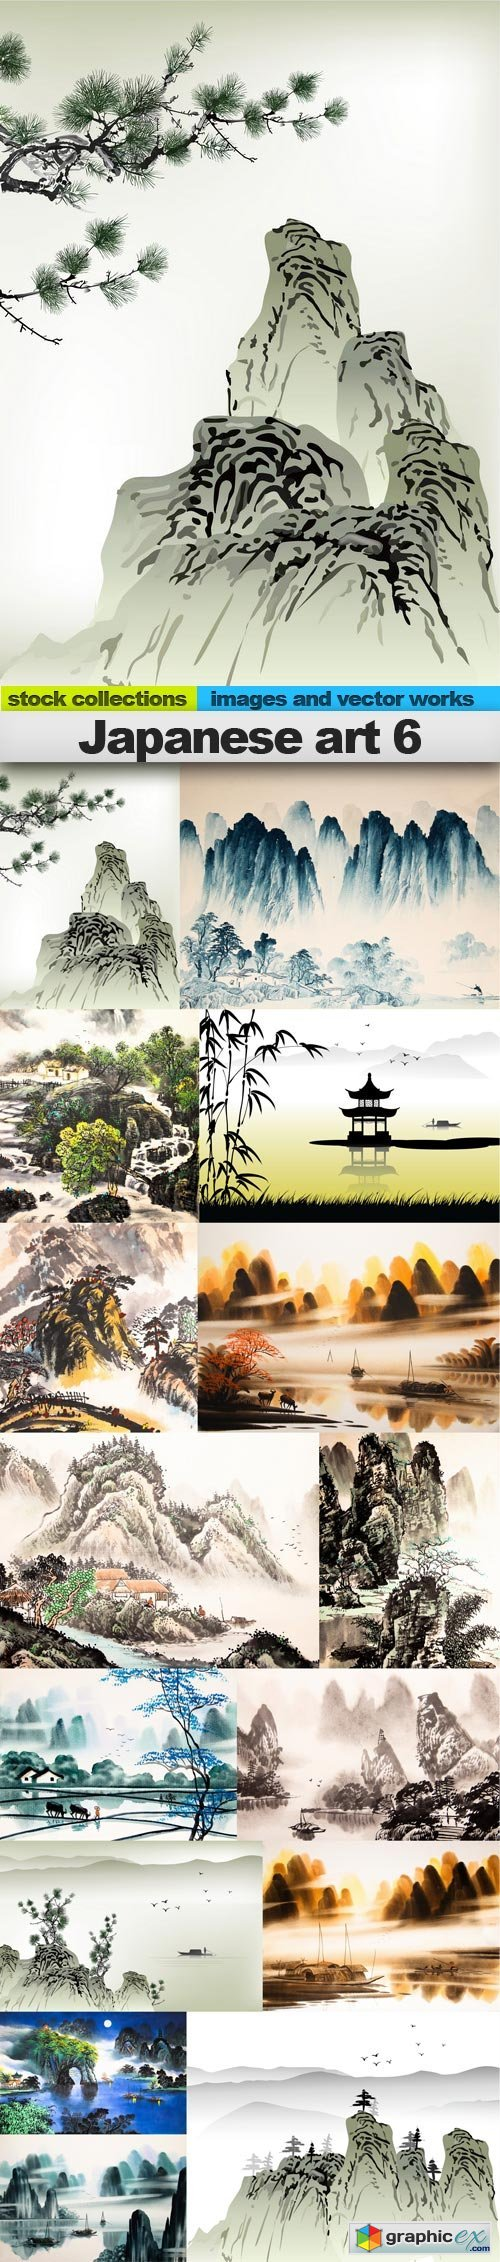 Japanese art 6, 15 x UHQ JPEG